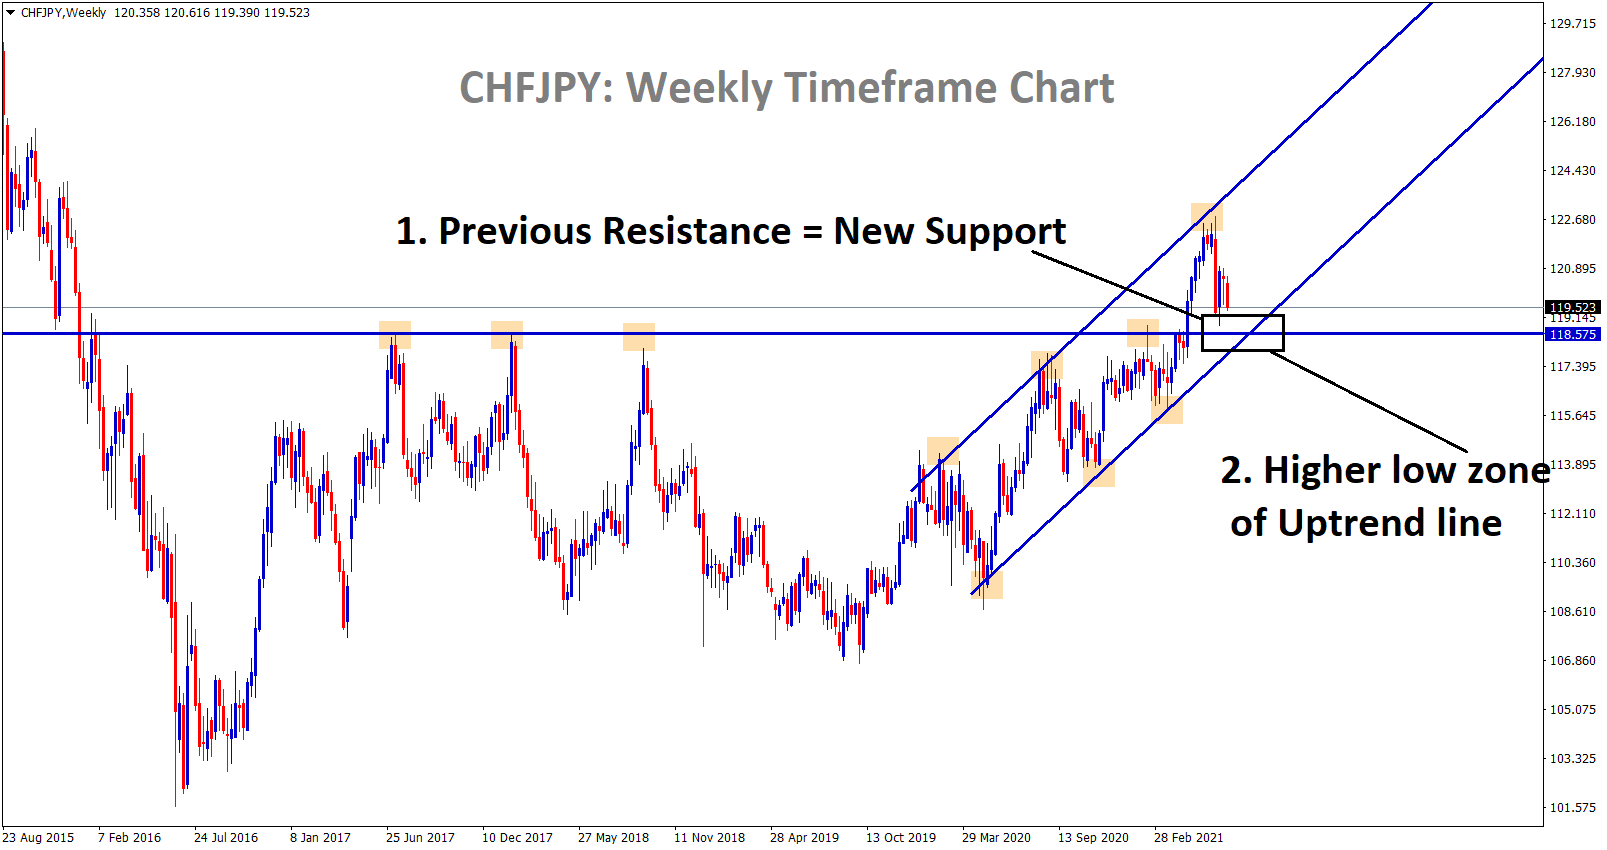 CHFJPY previous resistance 116.5 is acting as a new support and higher low zone of an uptrend line